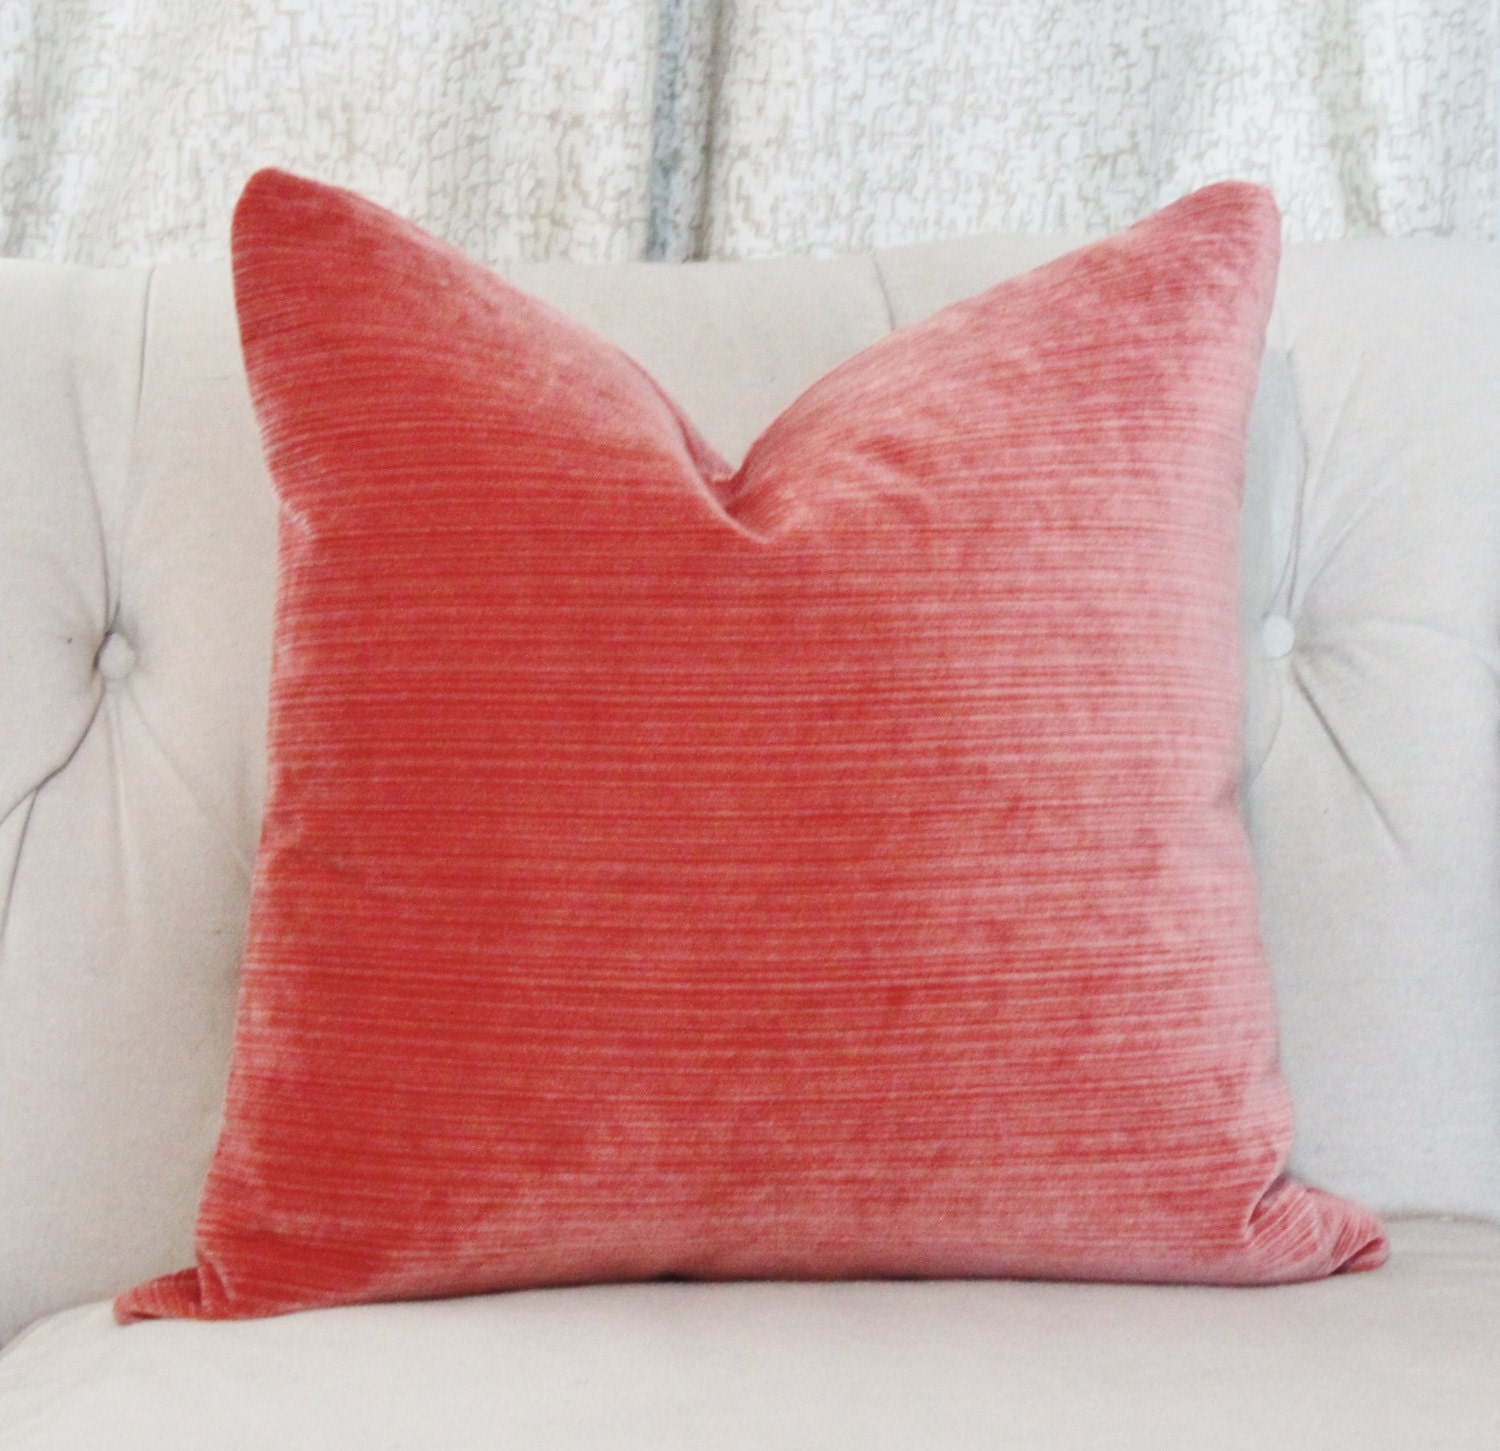 Sofa Pillow Covers 20x20